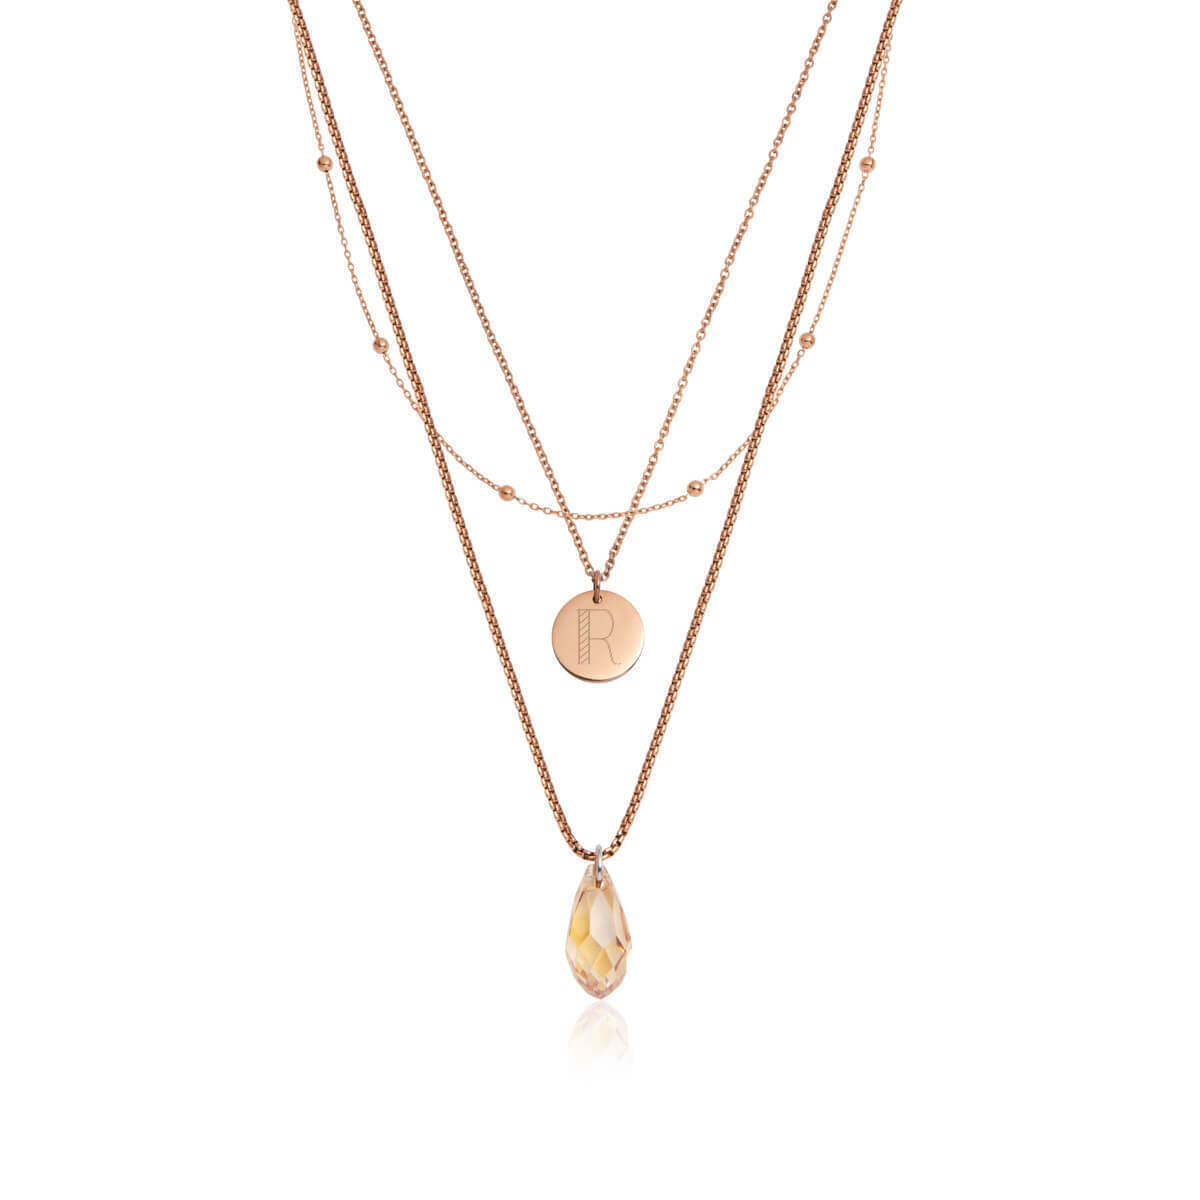 Crystal Little Luxe Necklace Set (Rose Gold)